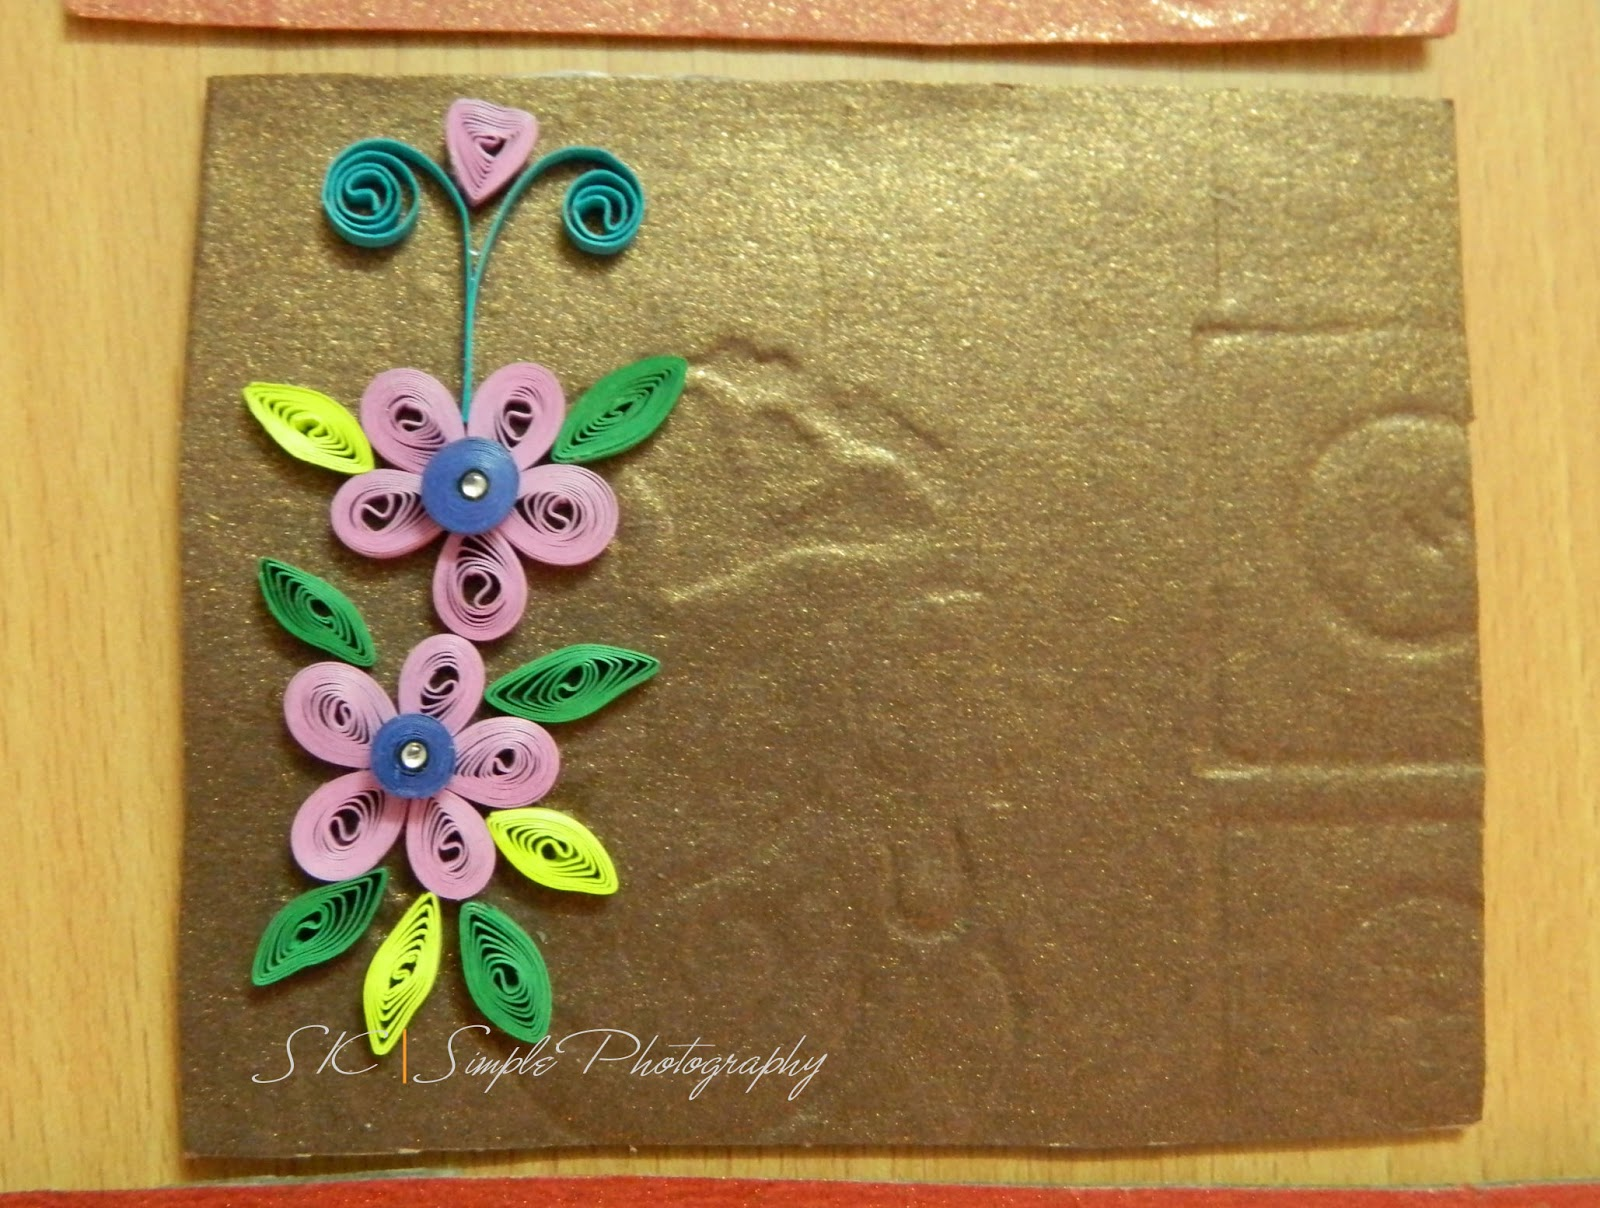 Some morning paper quilling designs creative art craft for Paper quilling work